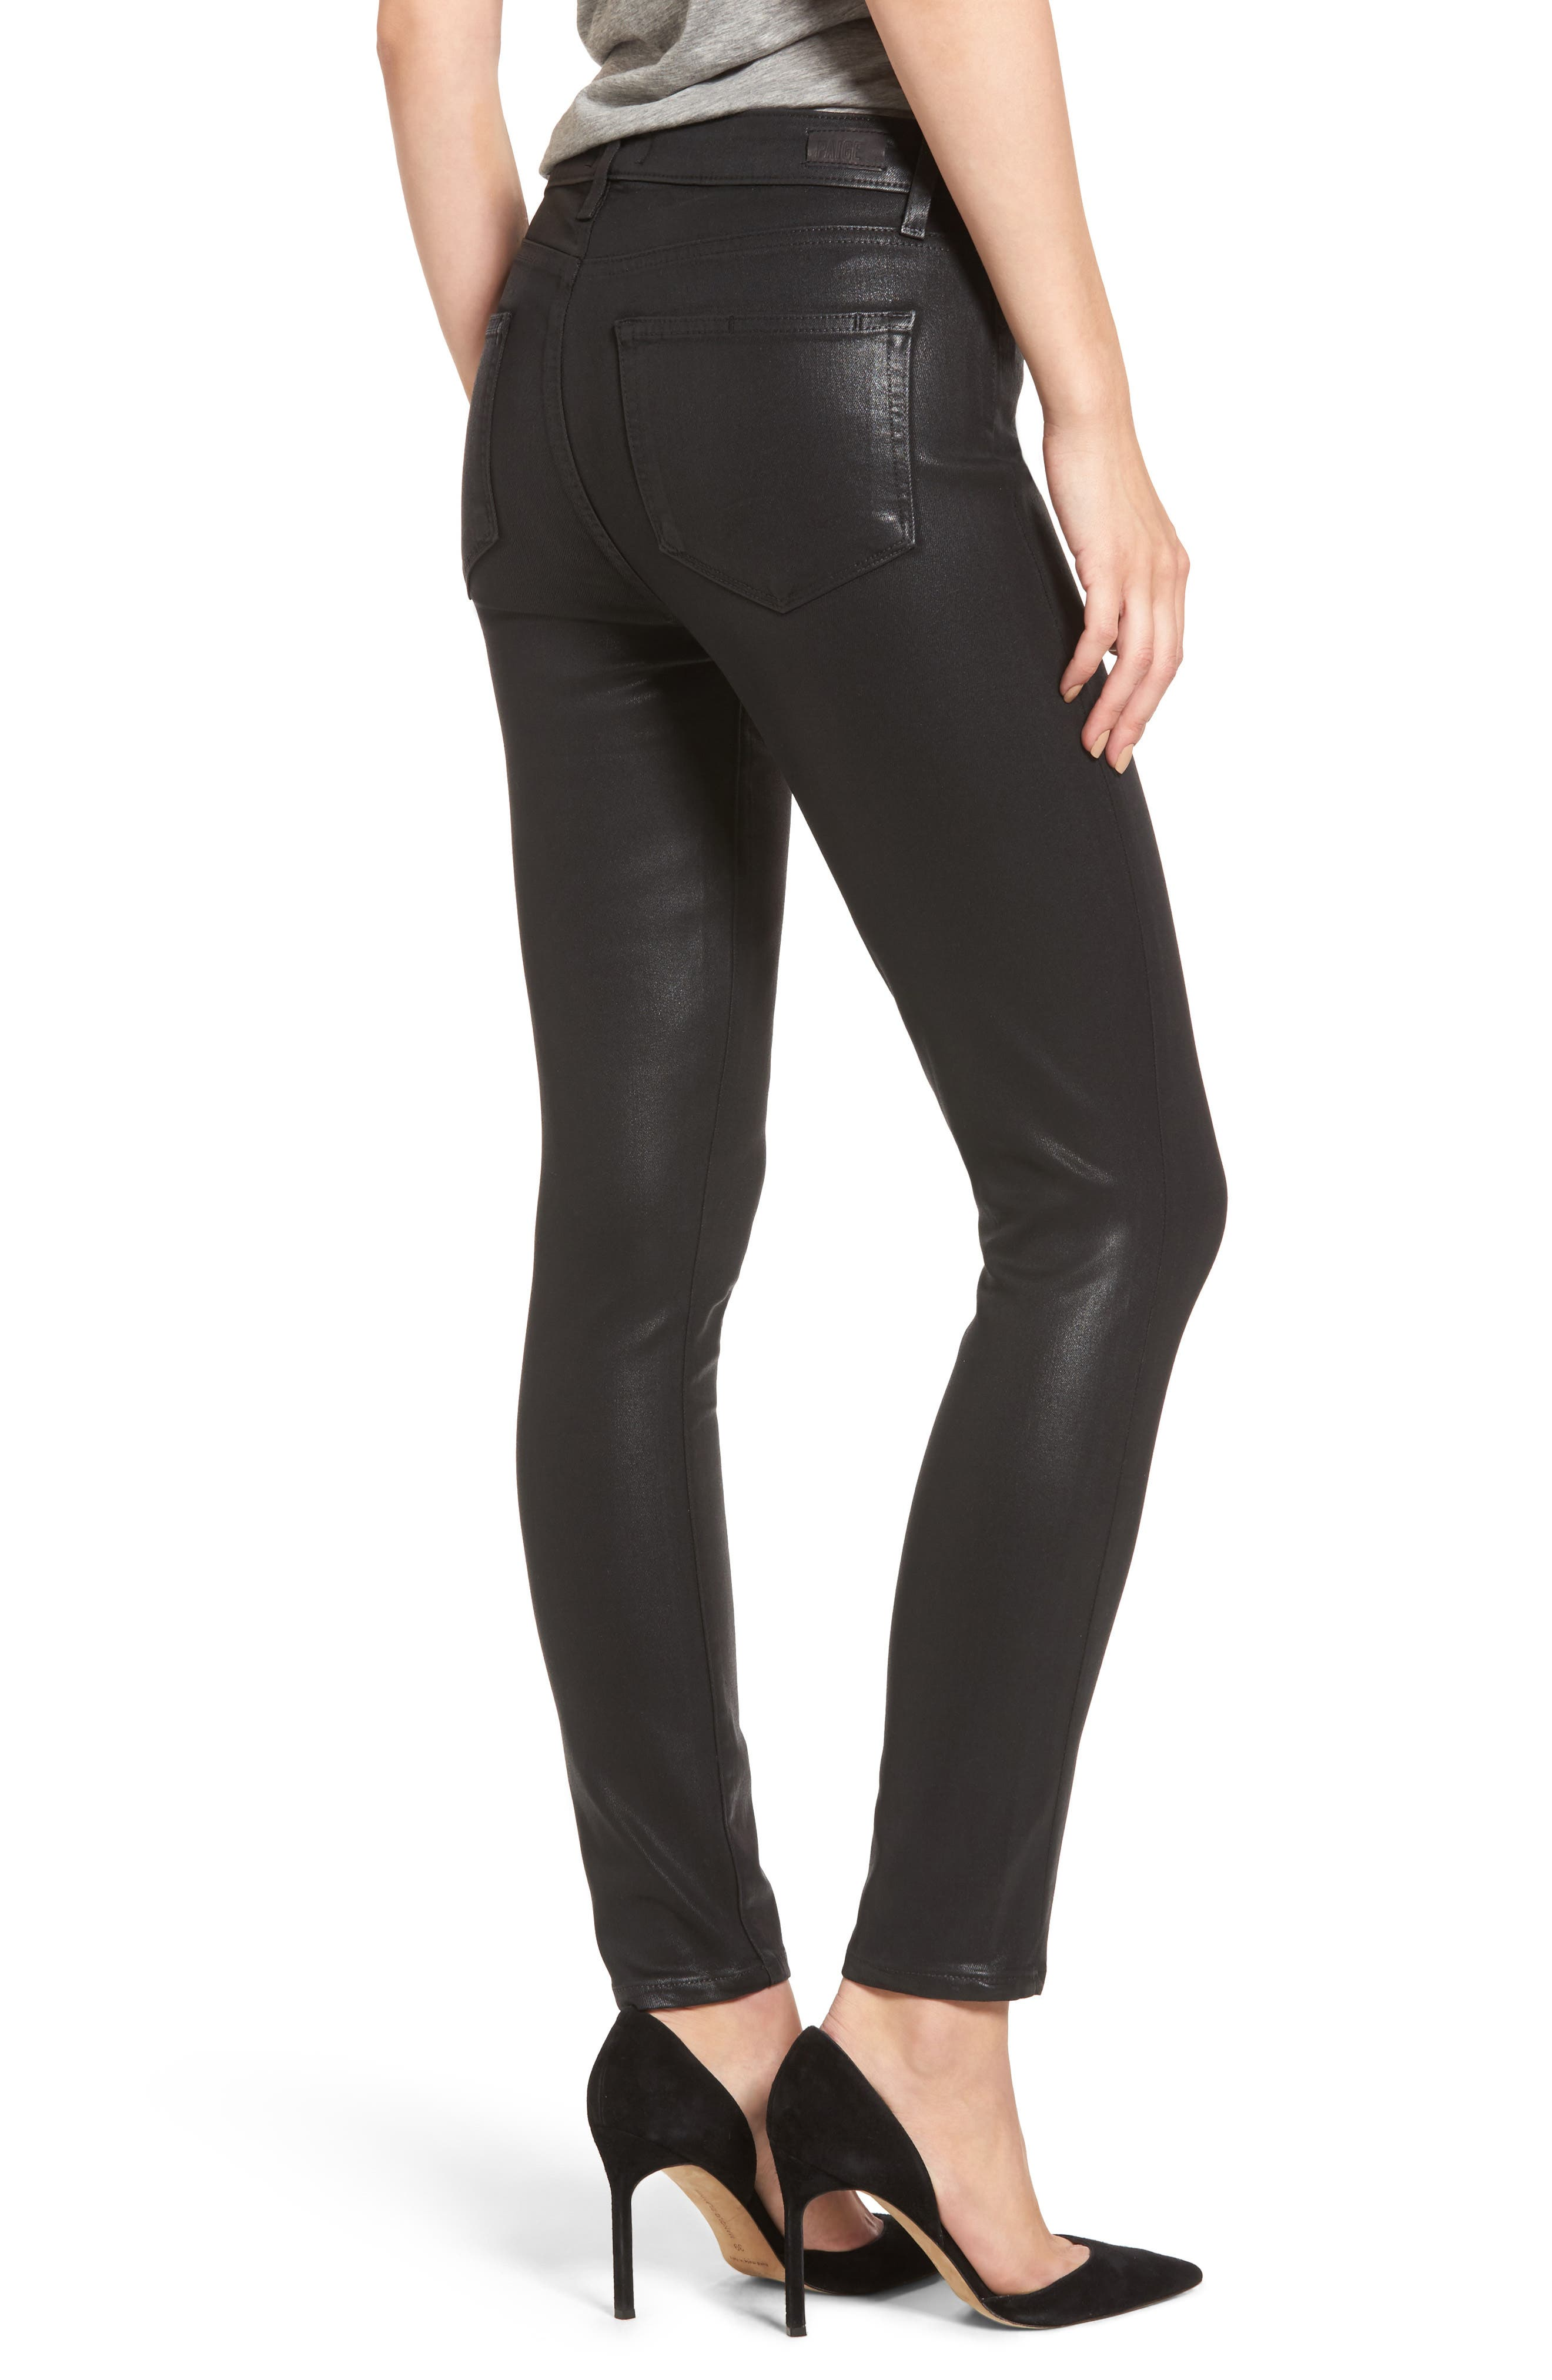 PAIGE,                             Transcend - Hoxton High Waist Ankle Skinny Jeans,                             Alternate thumbnail 2, color,                             LUXE BLACK COATED